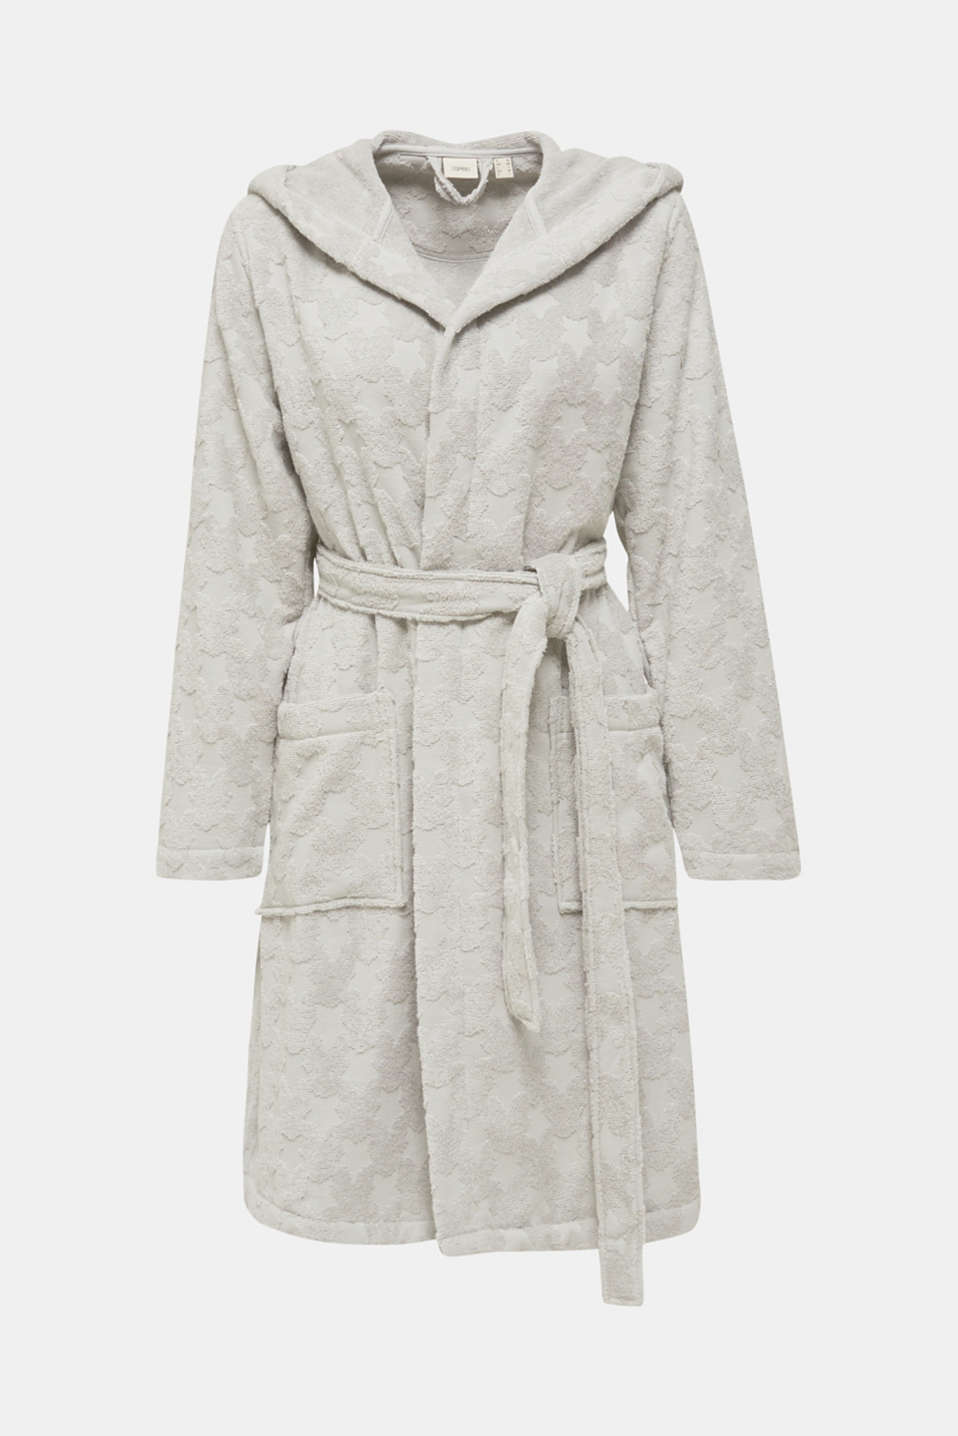 Bathrobe with star intarsia, 100% cotton, STONE, detail image number 3